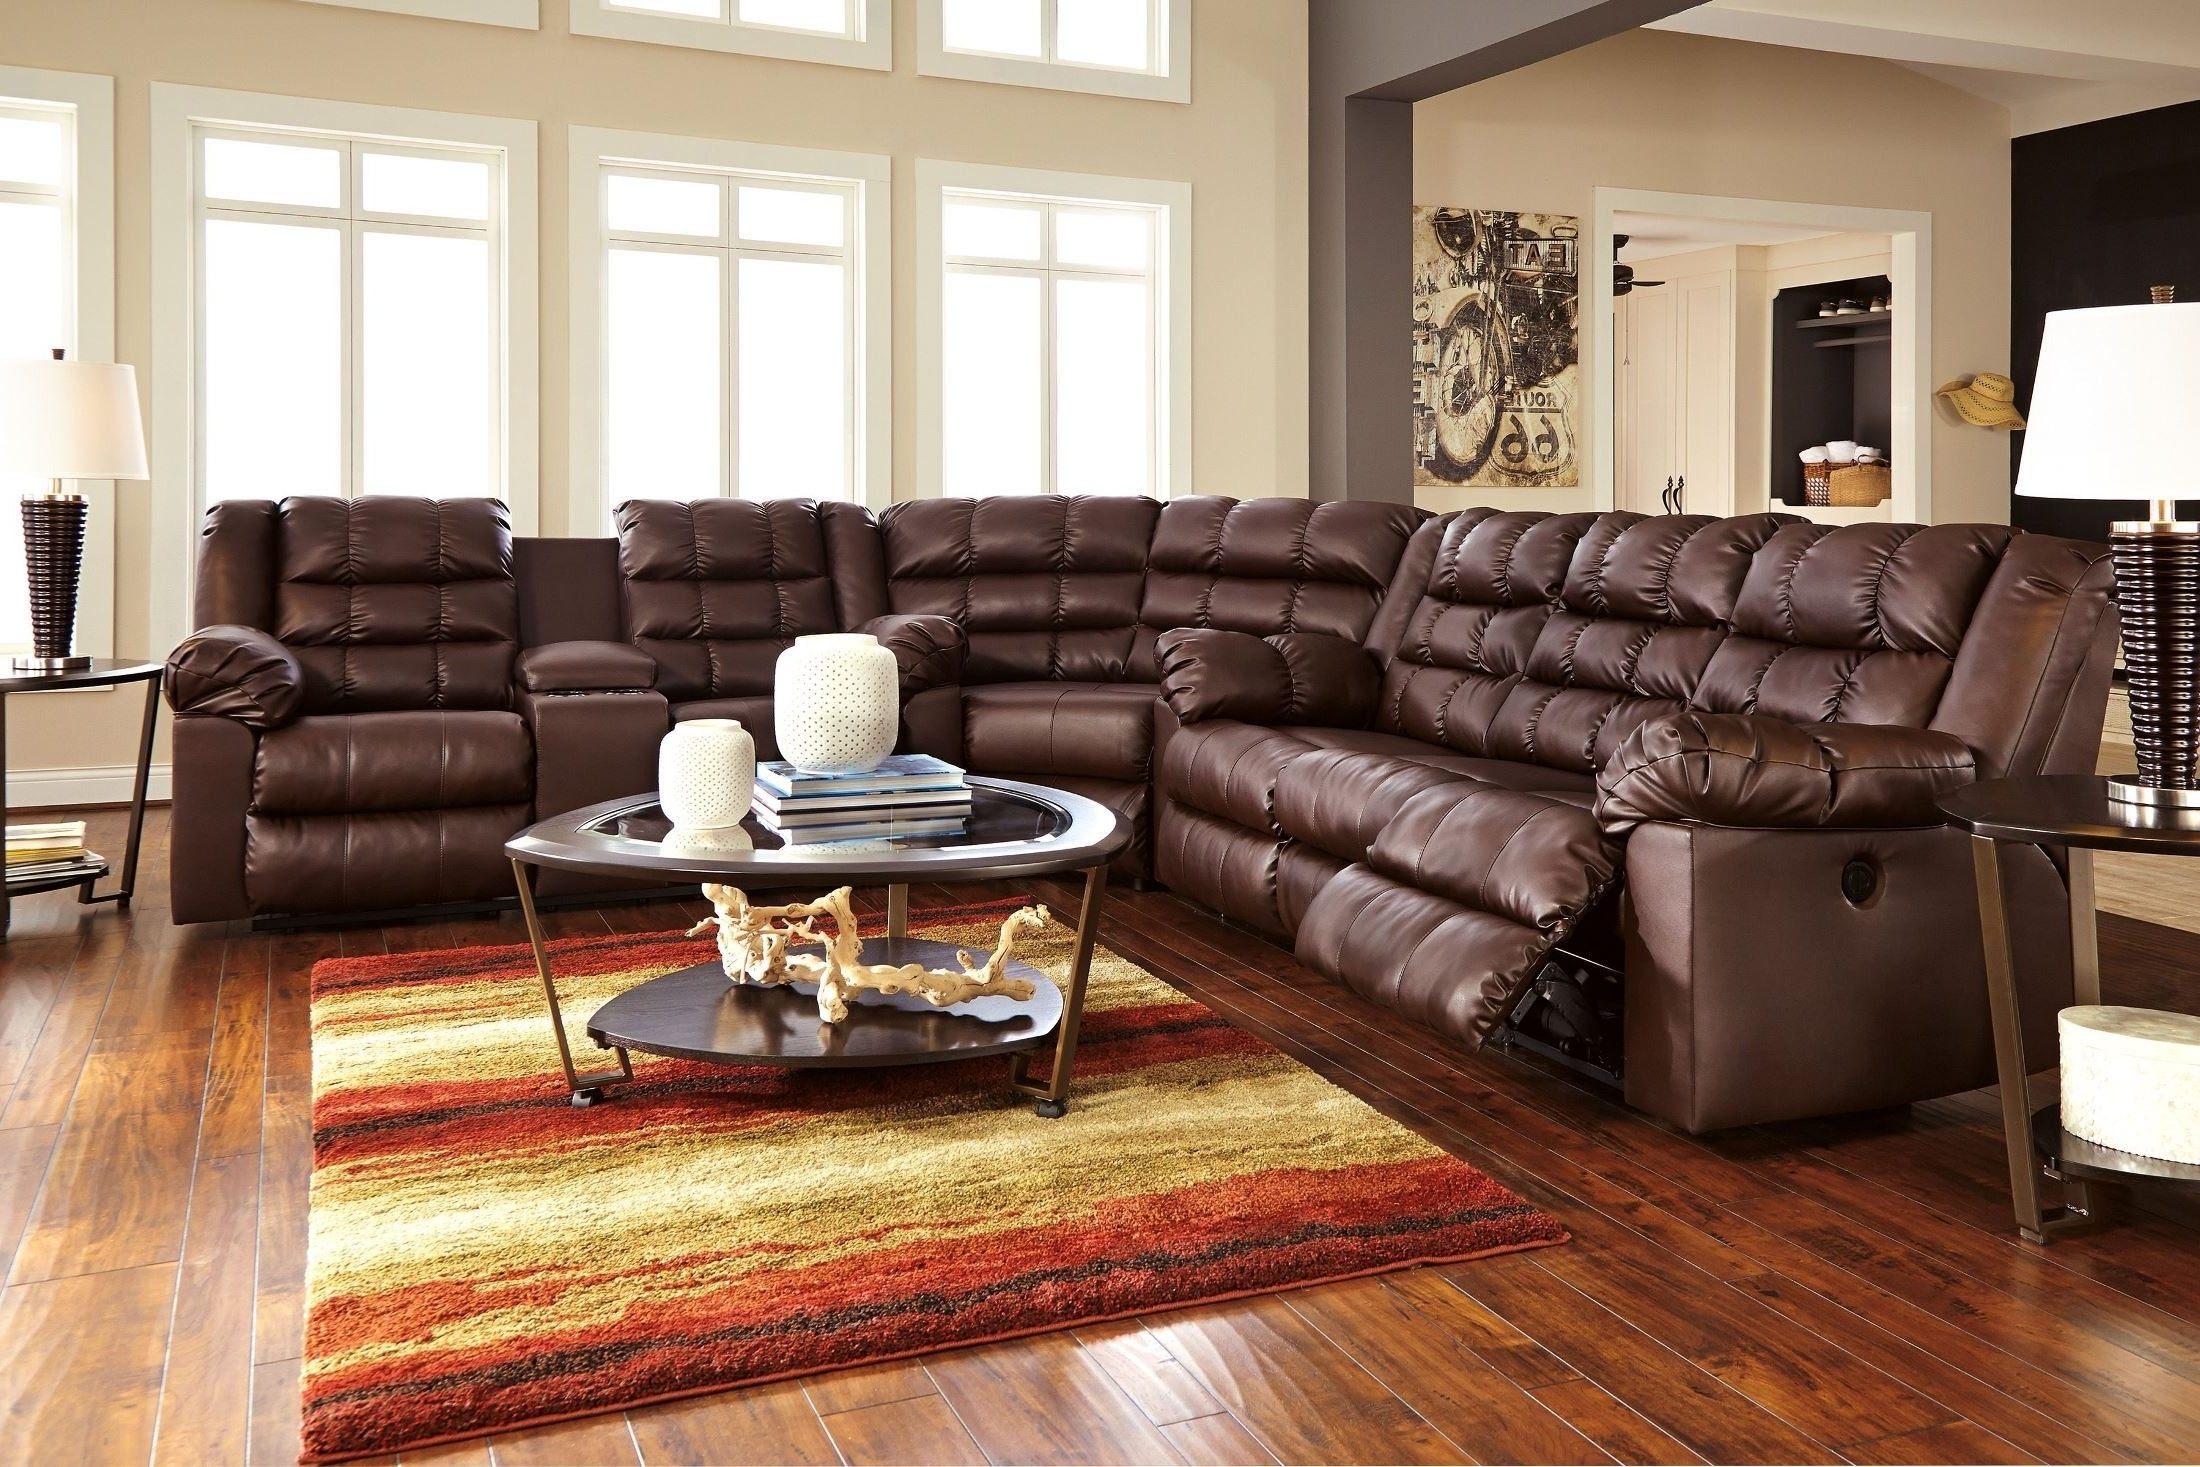 American Freight Sectionals Throughout Trendy Erie Pa Sectional Sofas (View 13 of 15)